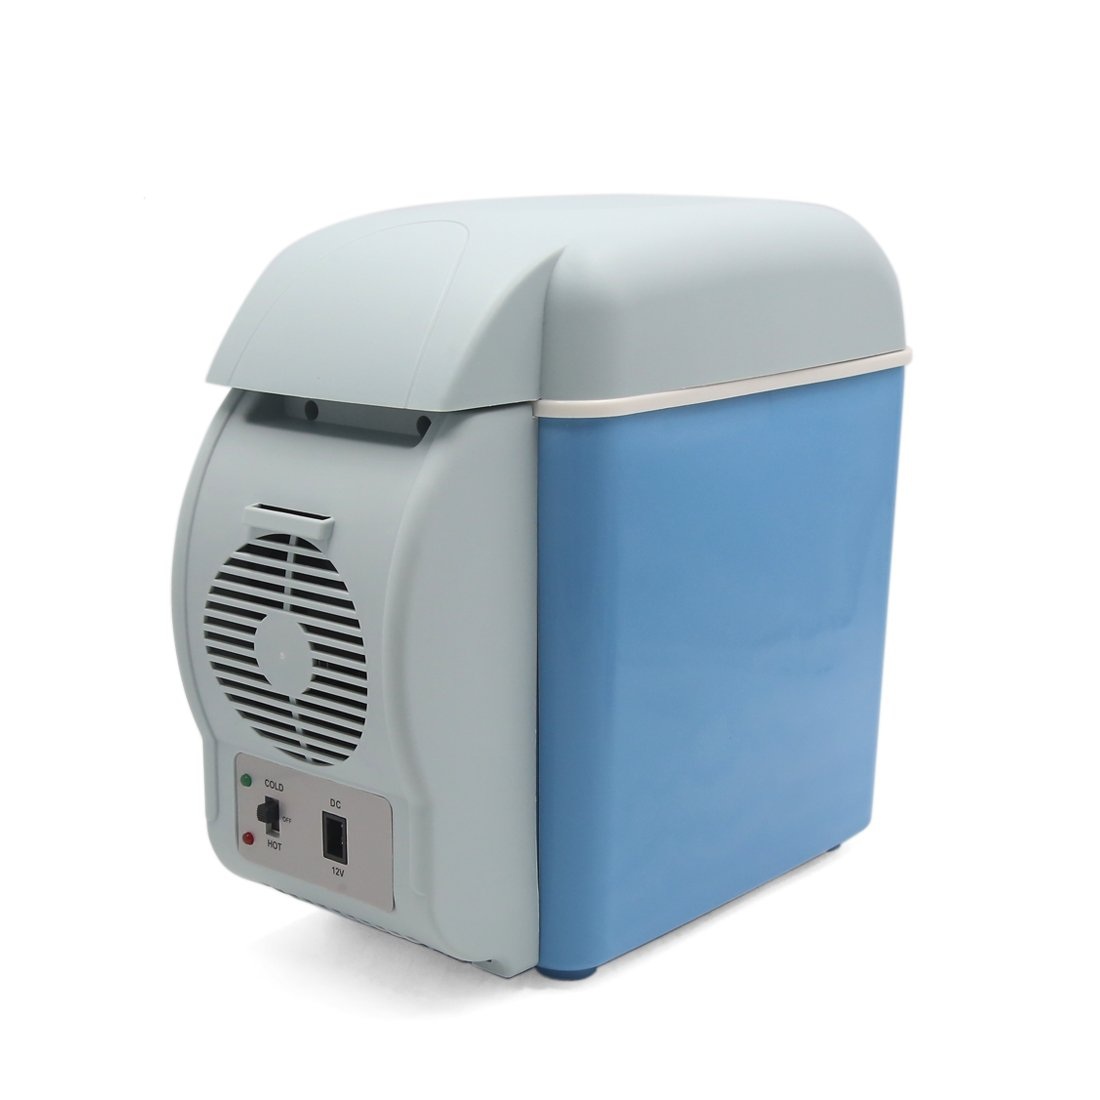 uxcell 7.5L DC 12V Drink Food Outdoor Mini Cooling Warming Refrigerator for Home Car